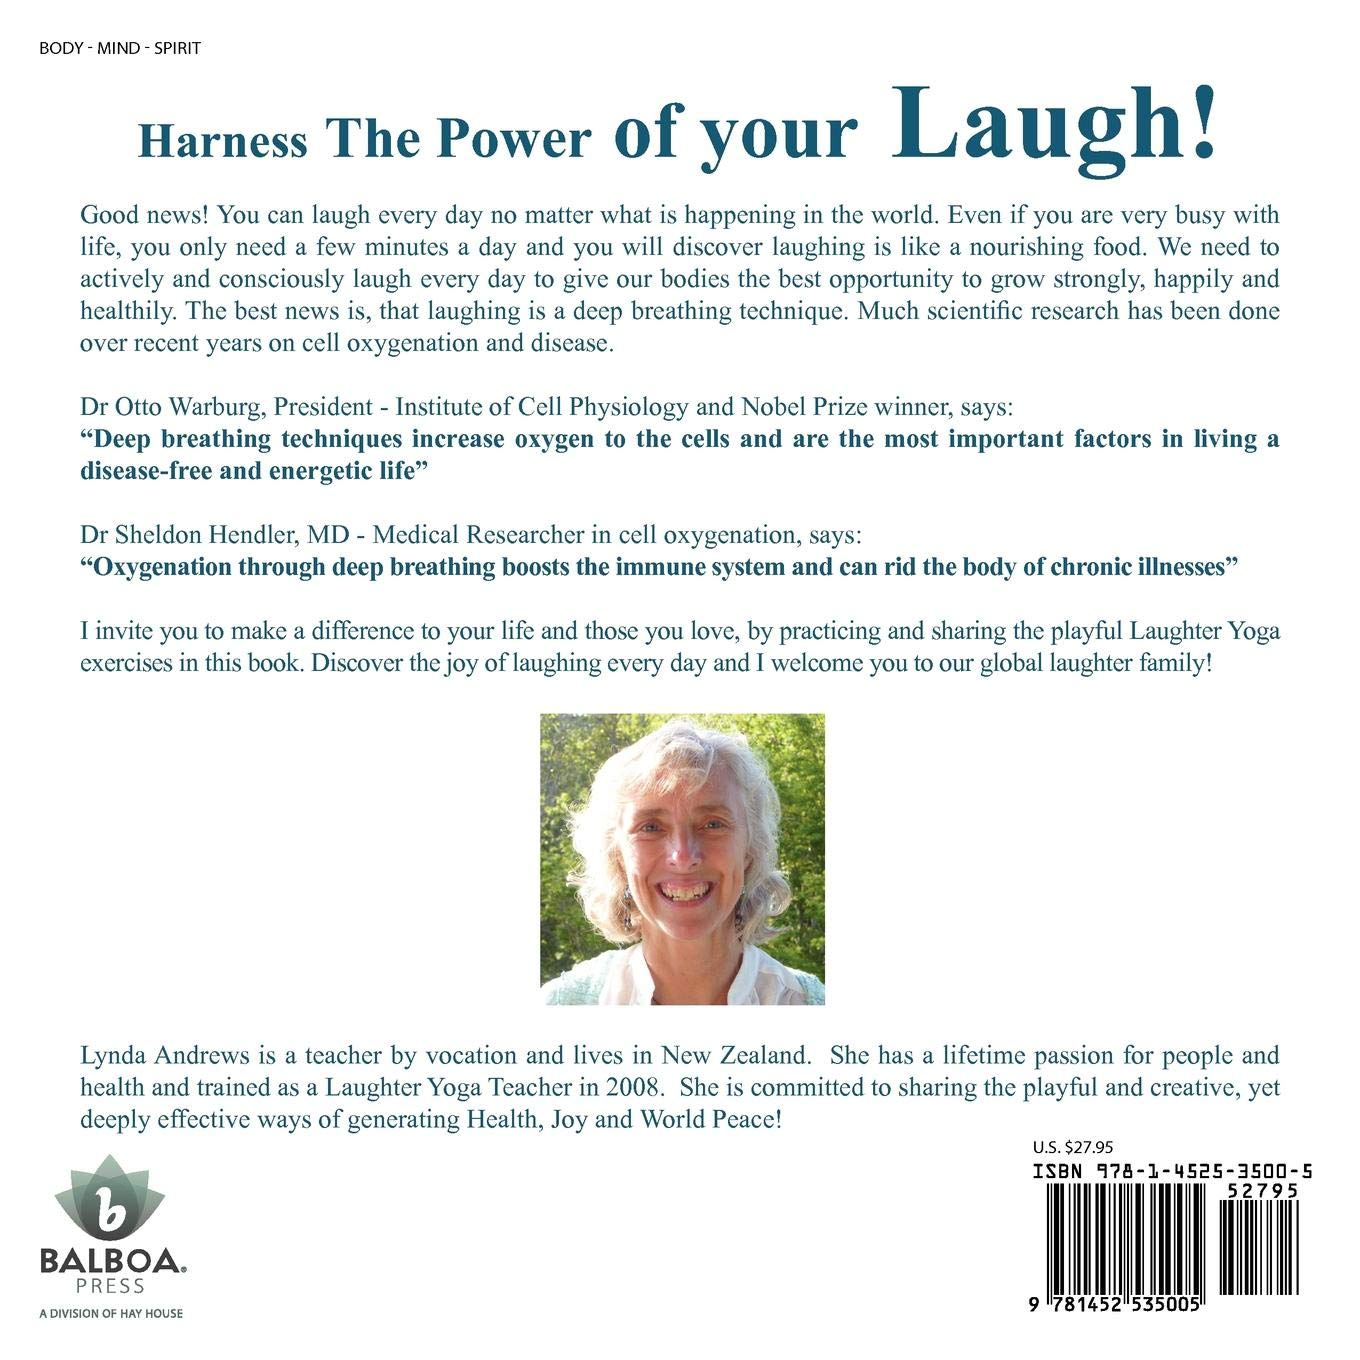 Harness The Power of your Laugh!: Laughing Heartily Today and Everyday!